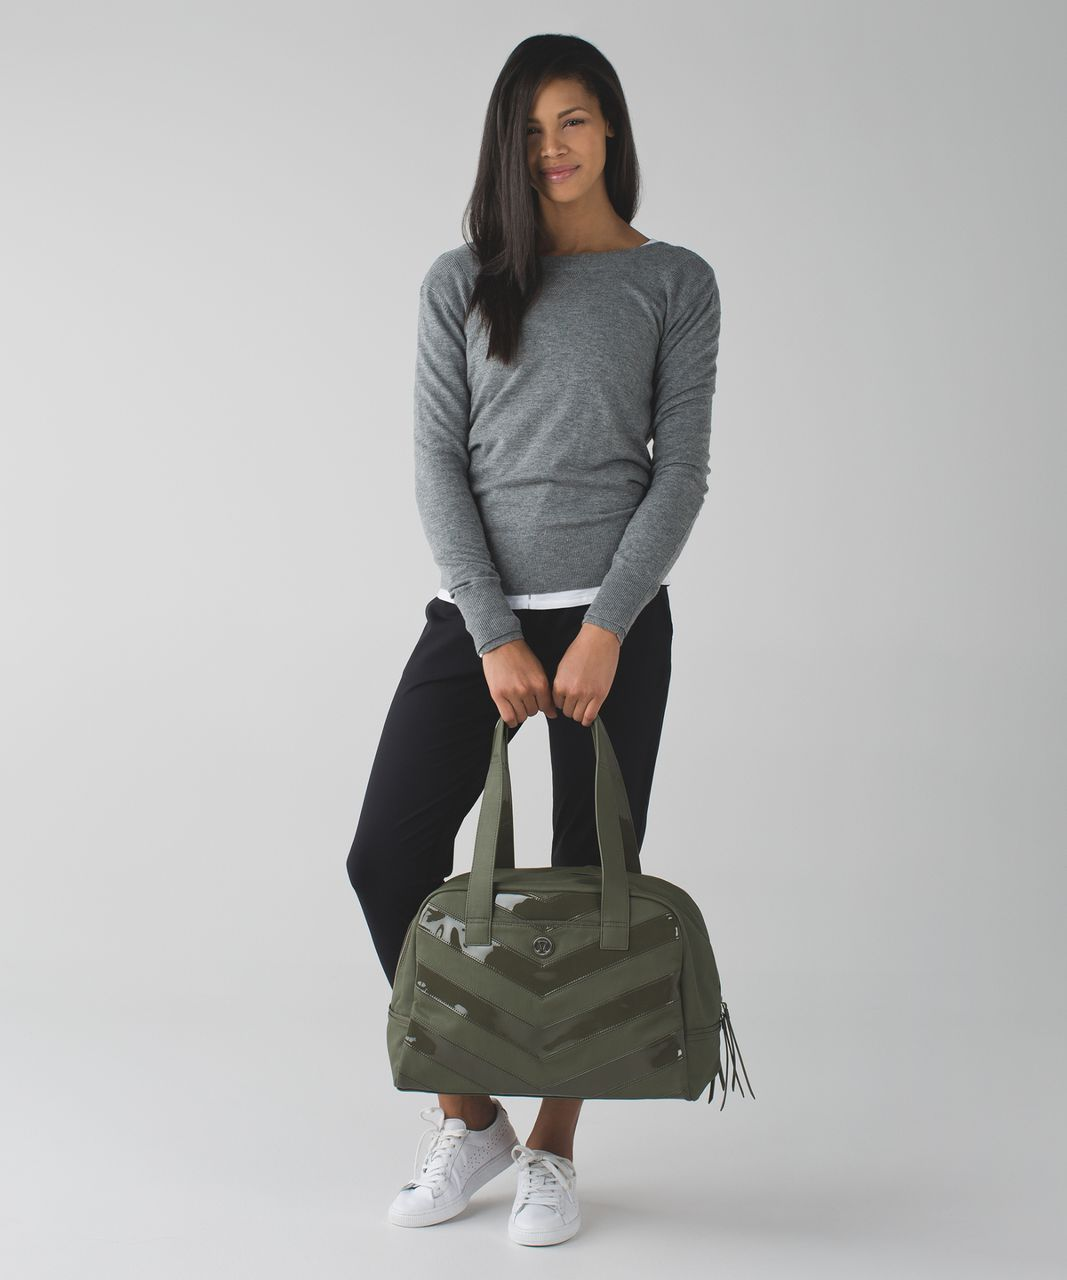 Lululemon Urban Sanctuary Bag - Fatigue Green